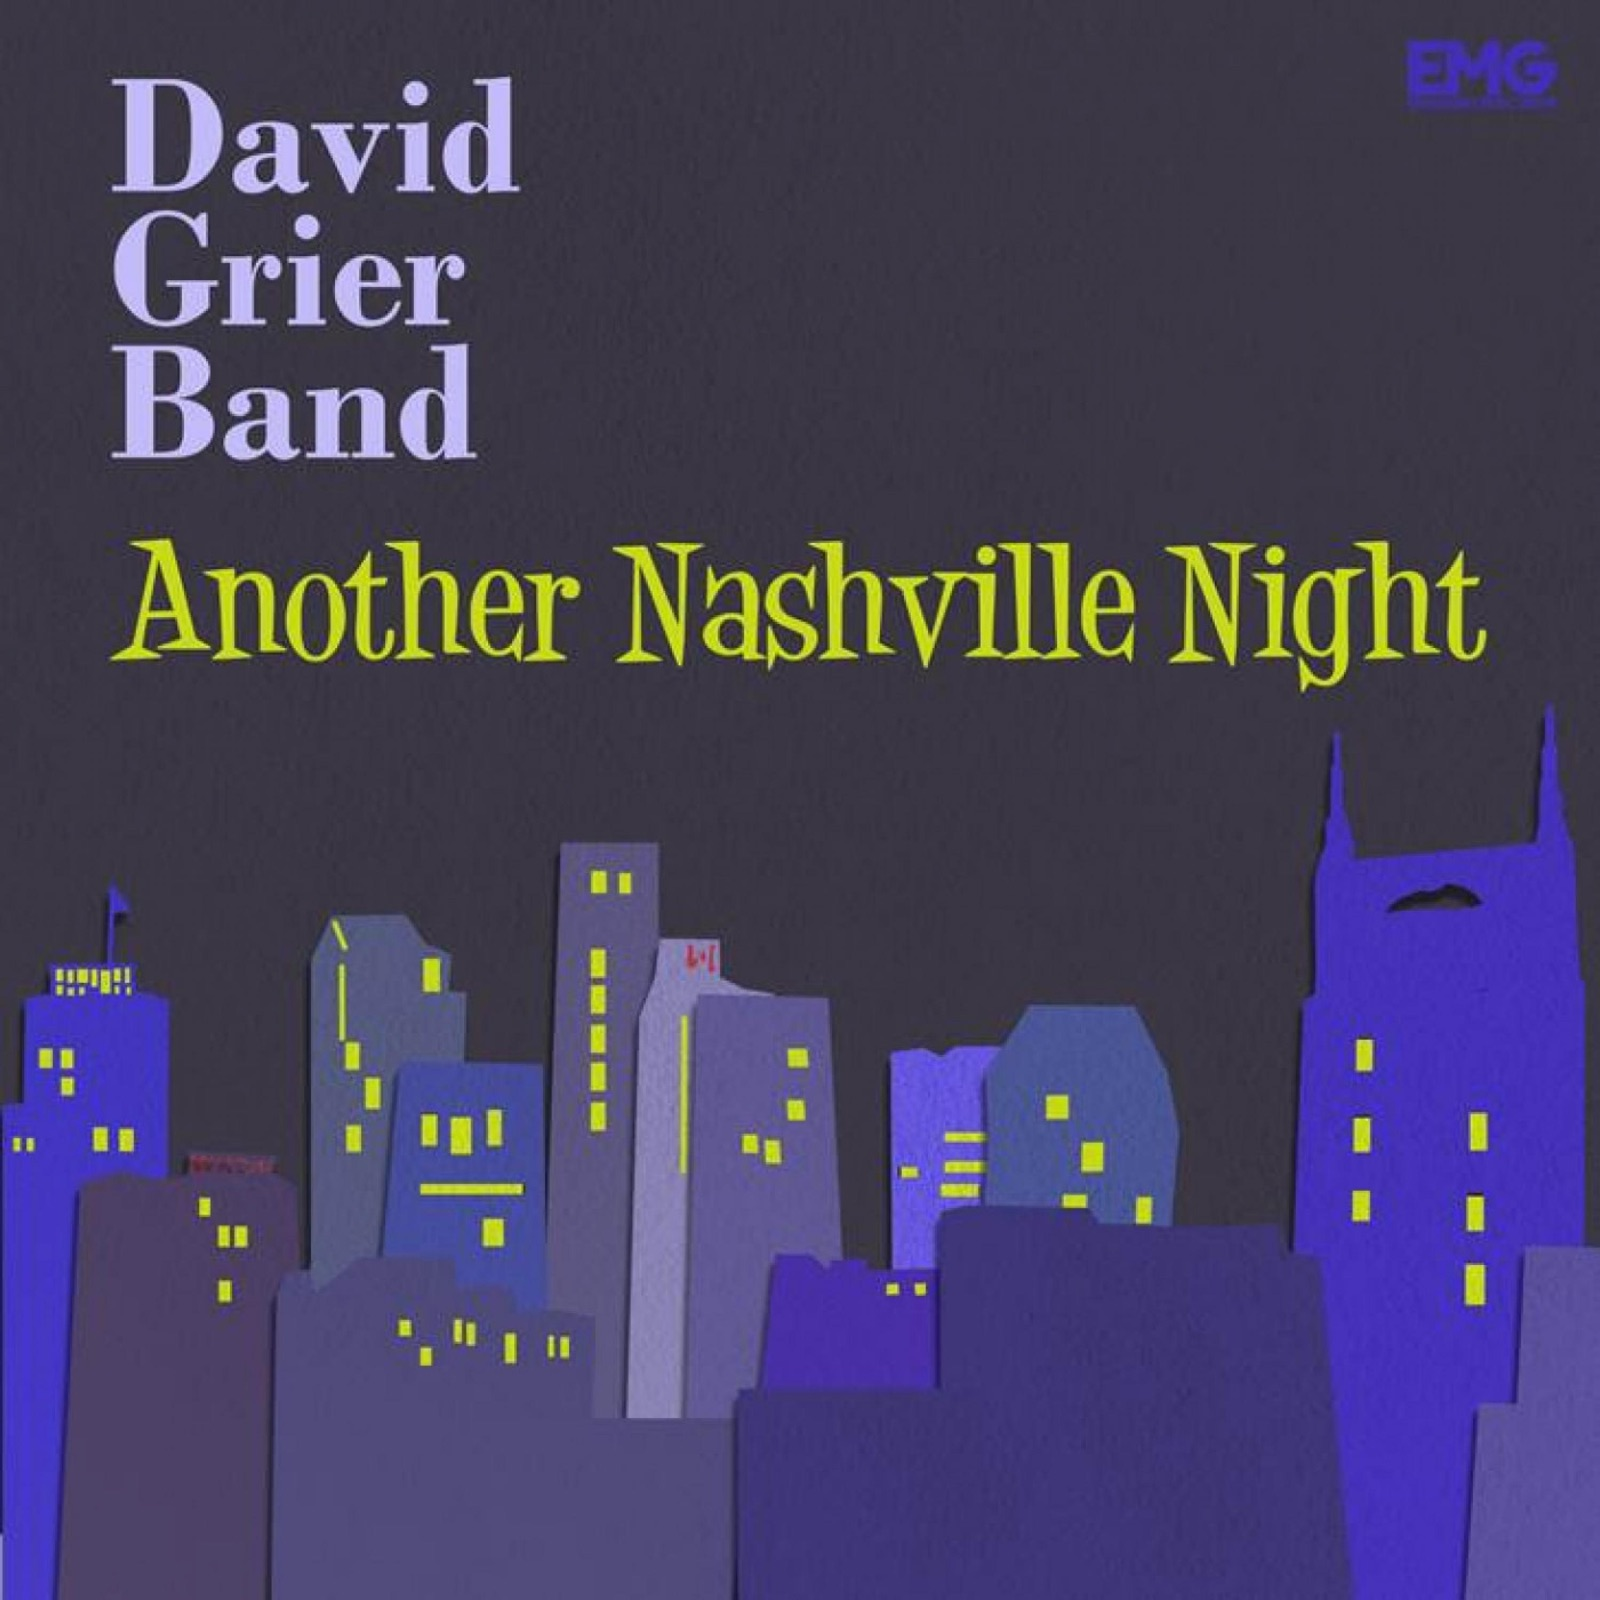 David Grier Band (Another Nashville Night)